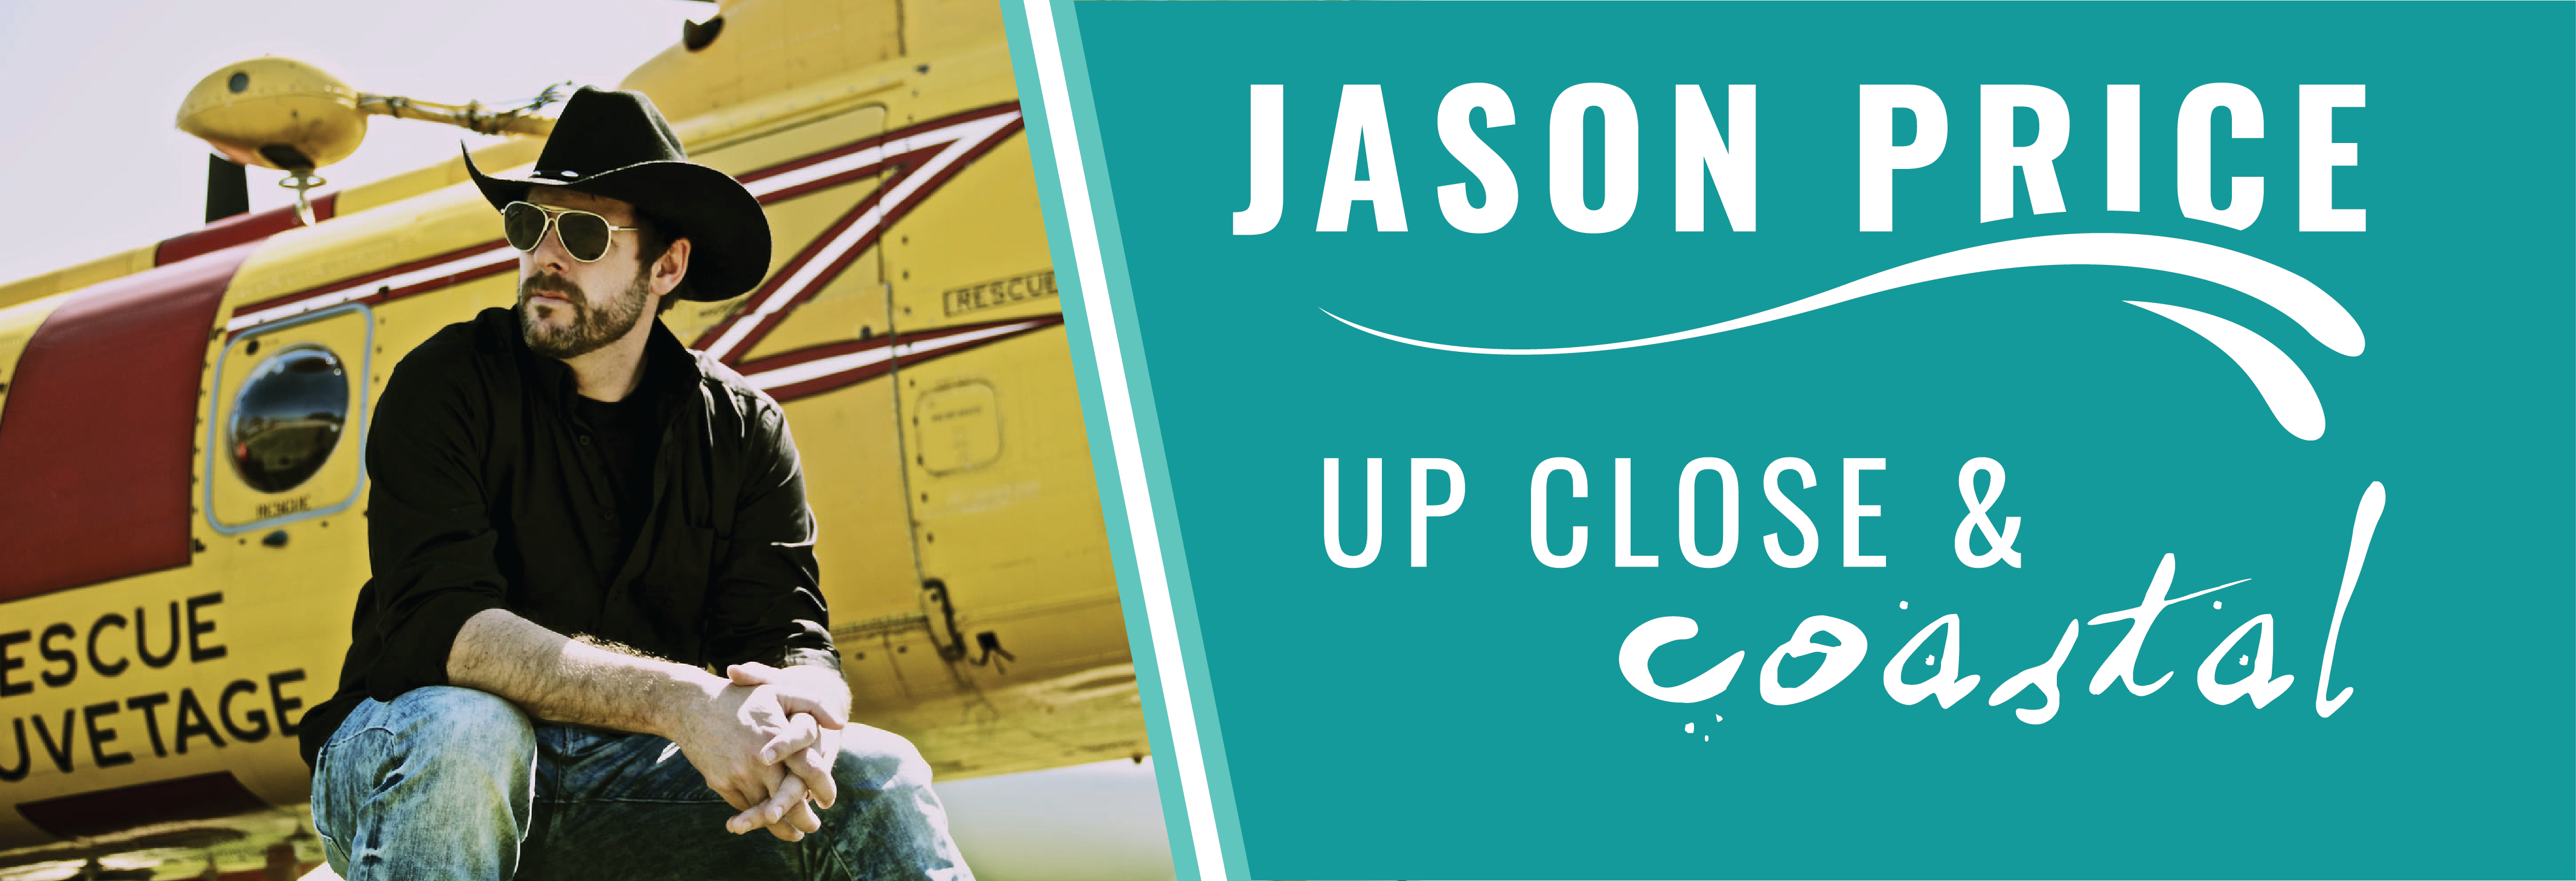 Jason Price: Up Close and Coastal Country show at Oceanstone Seaside Resort